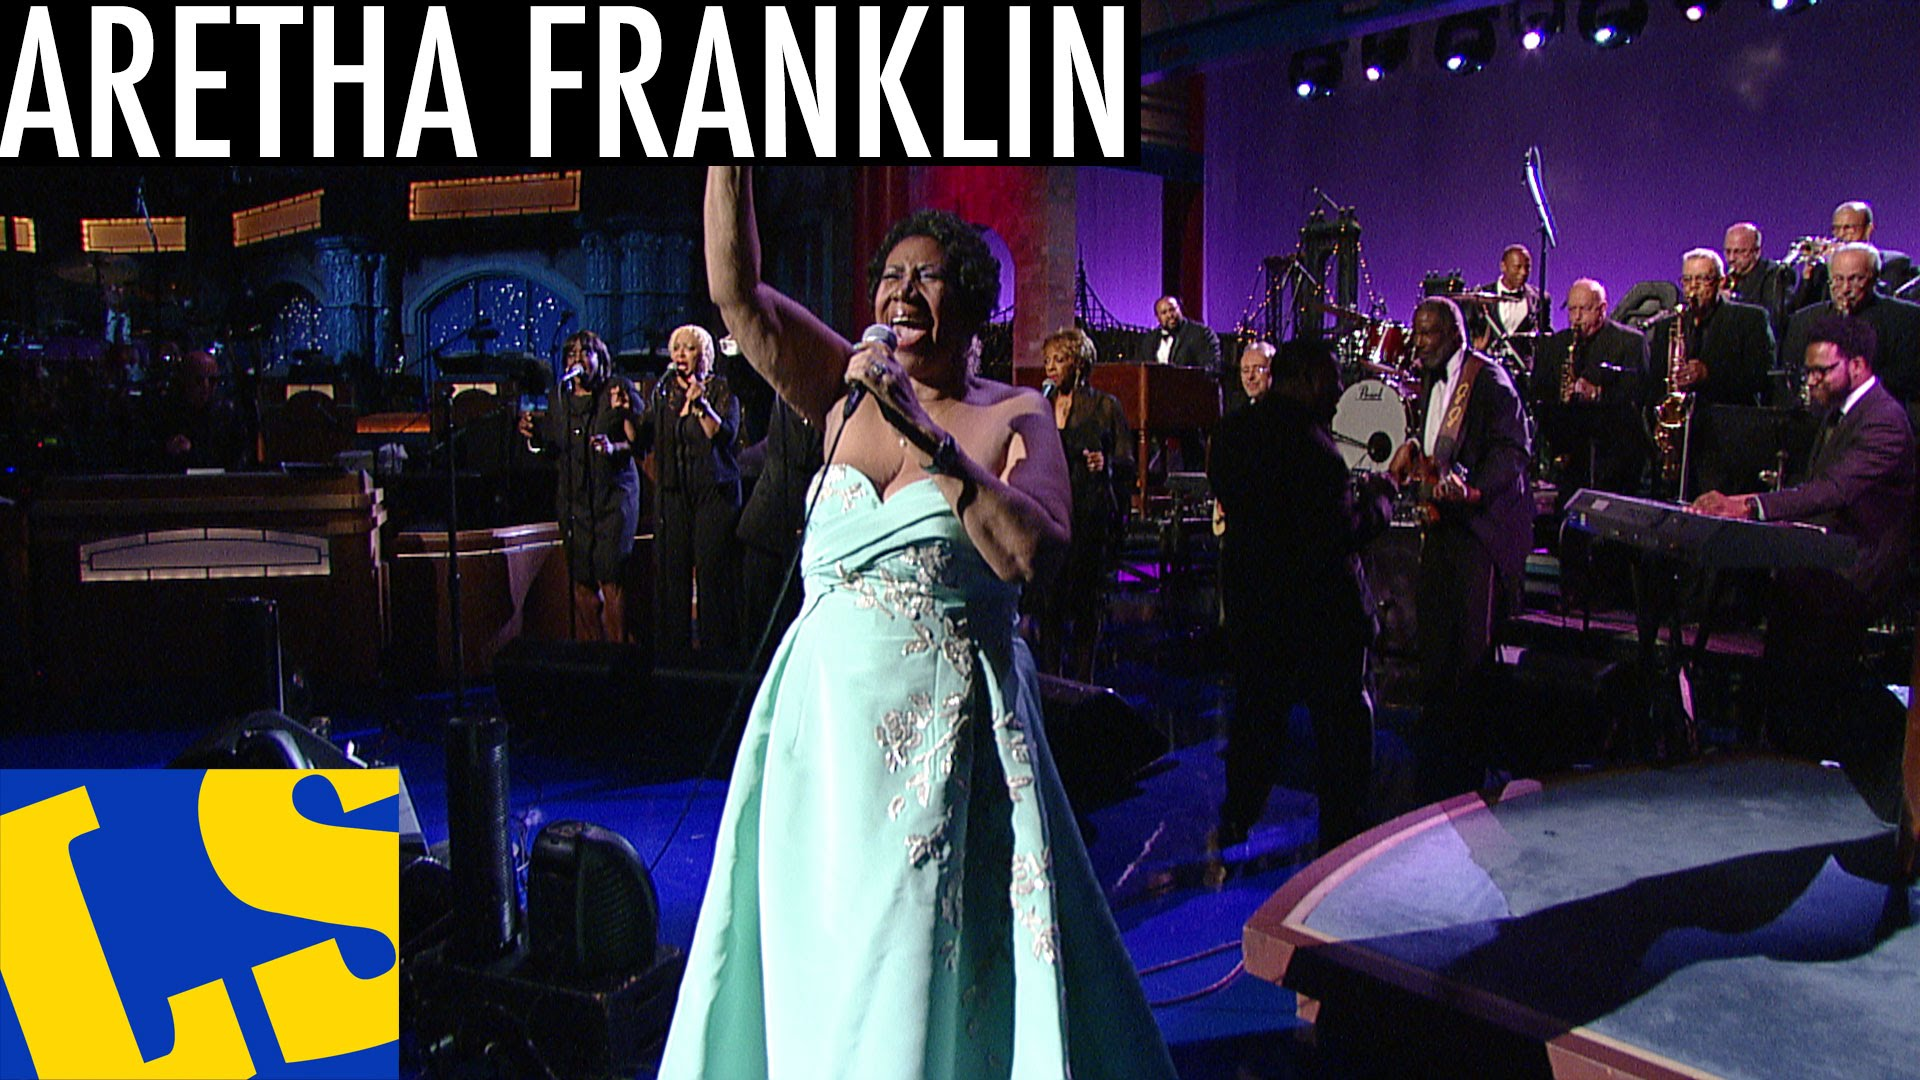 Aretha Franklin to present musical tribute to her father in Detroit church